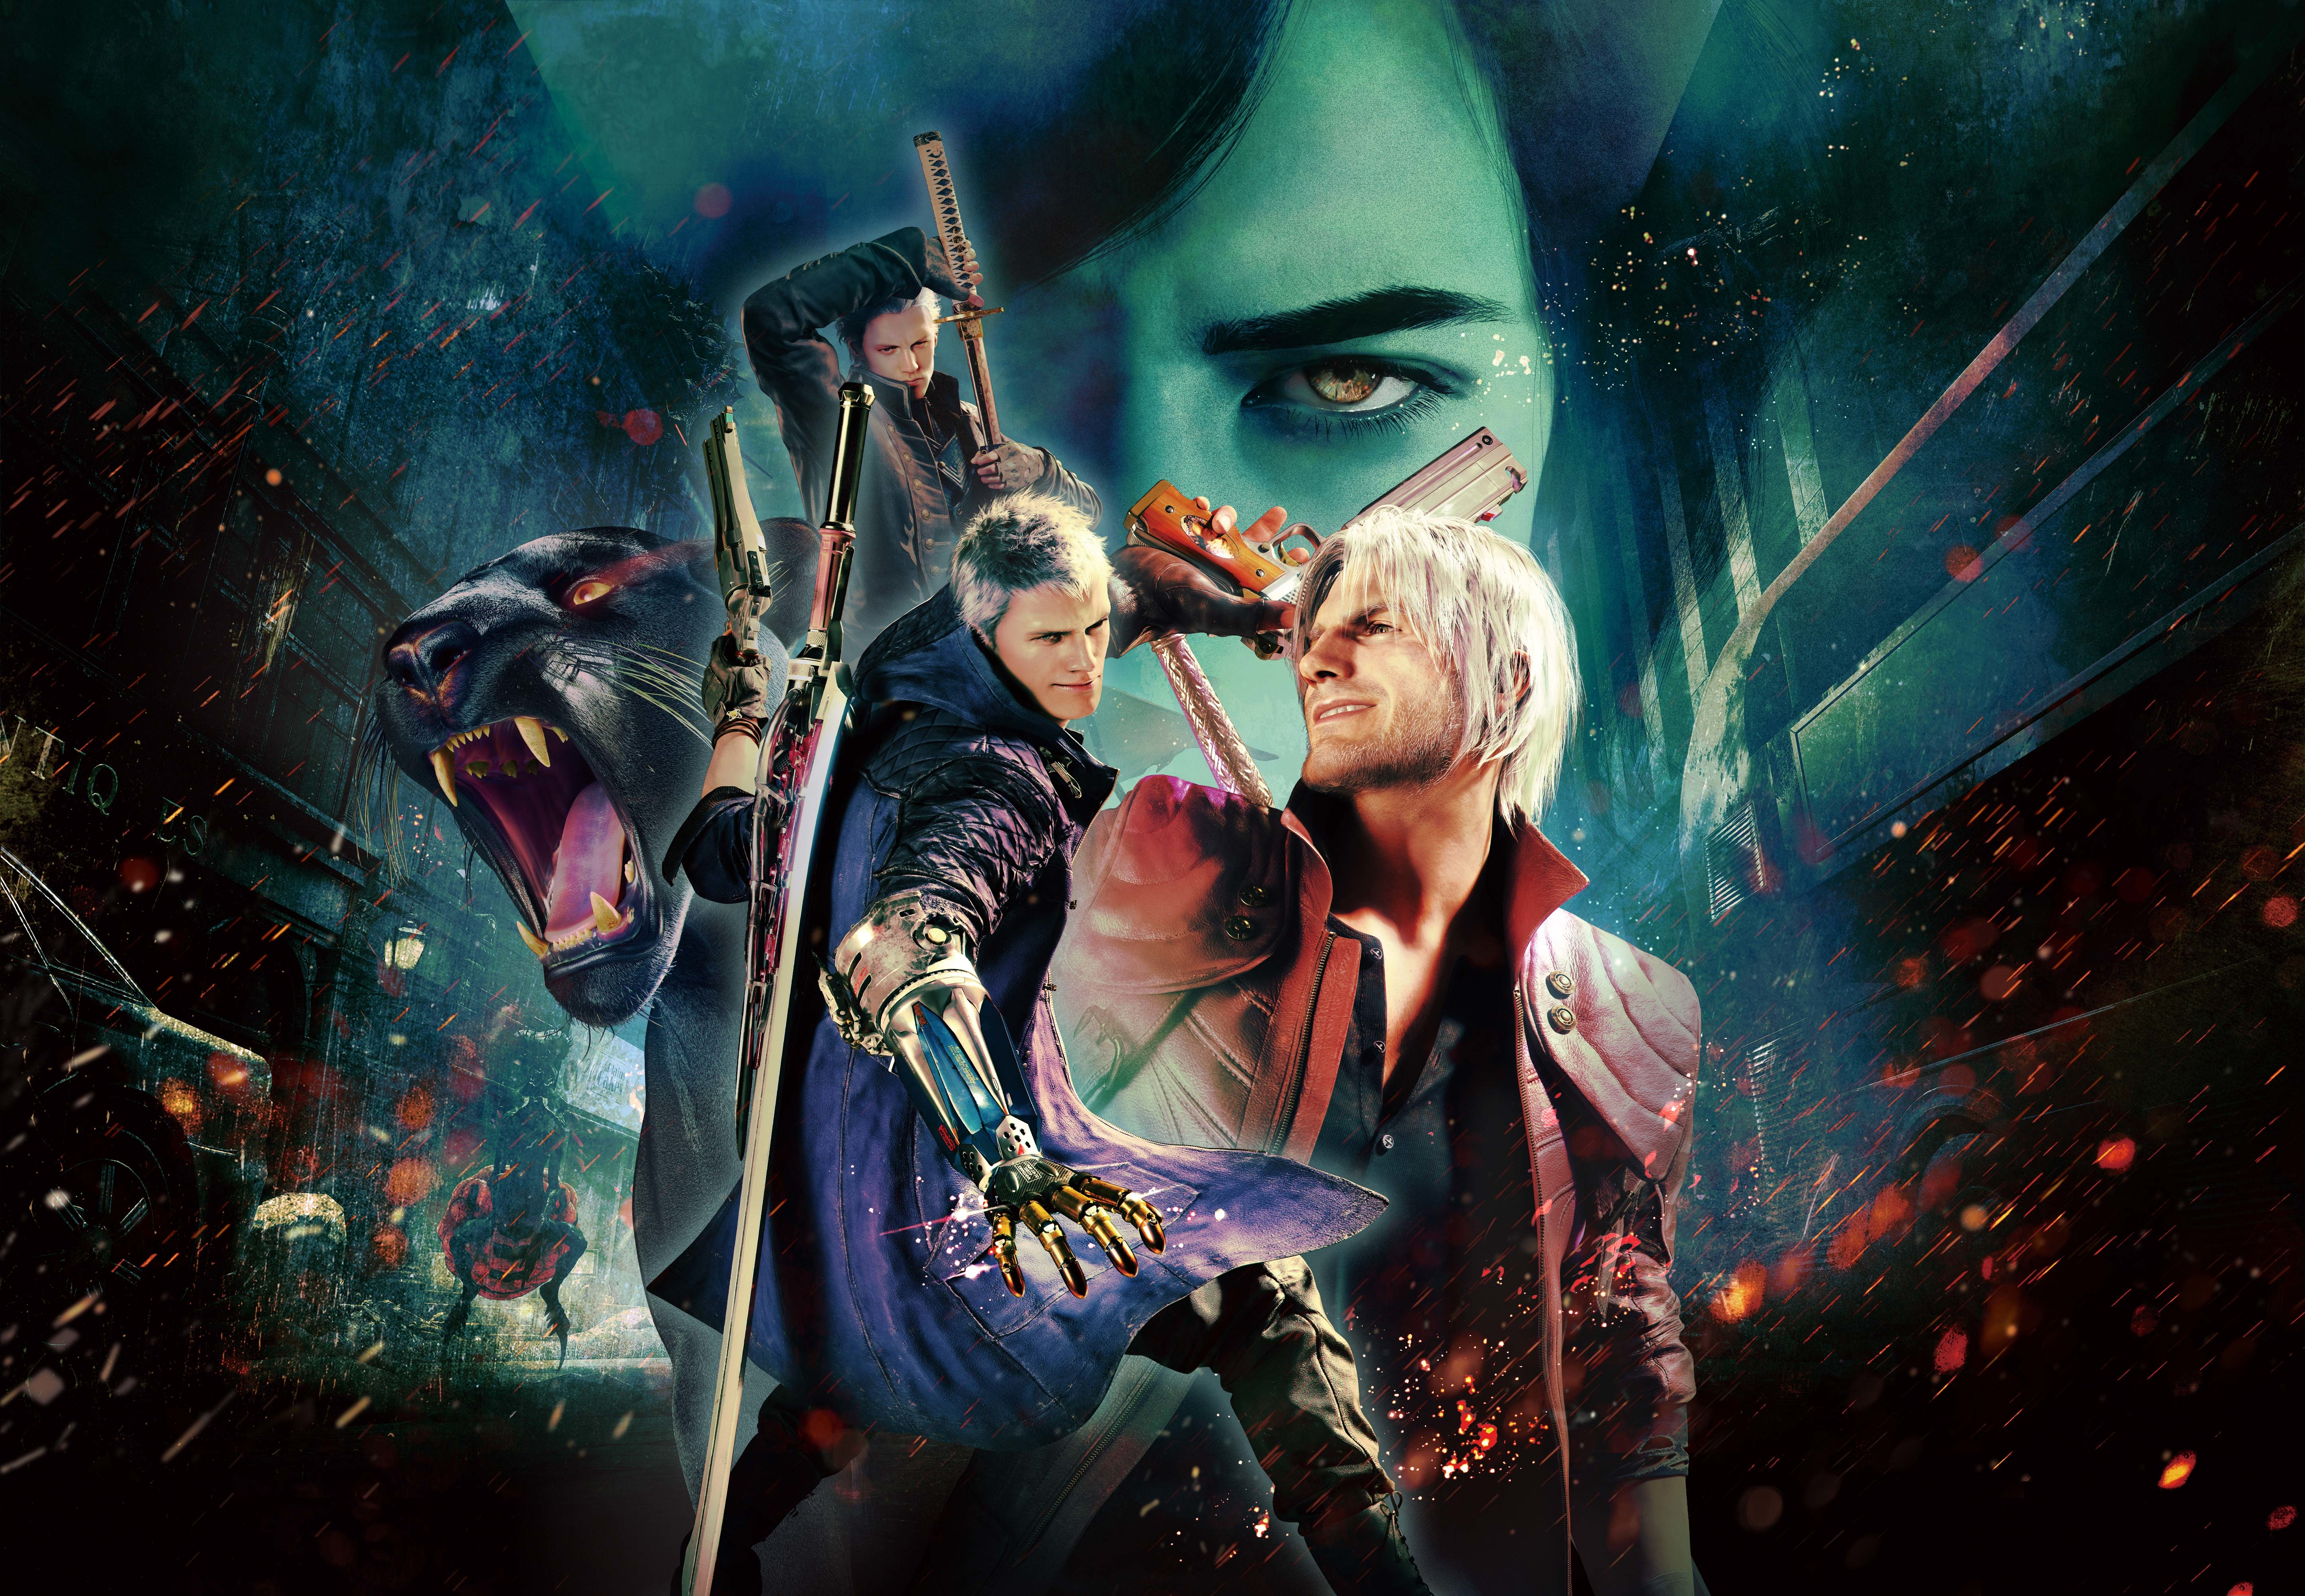 Devil May Cry 5 Special Edition 5K Wallpaper, HD Games 4K ...